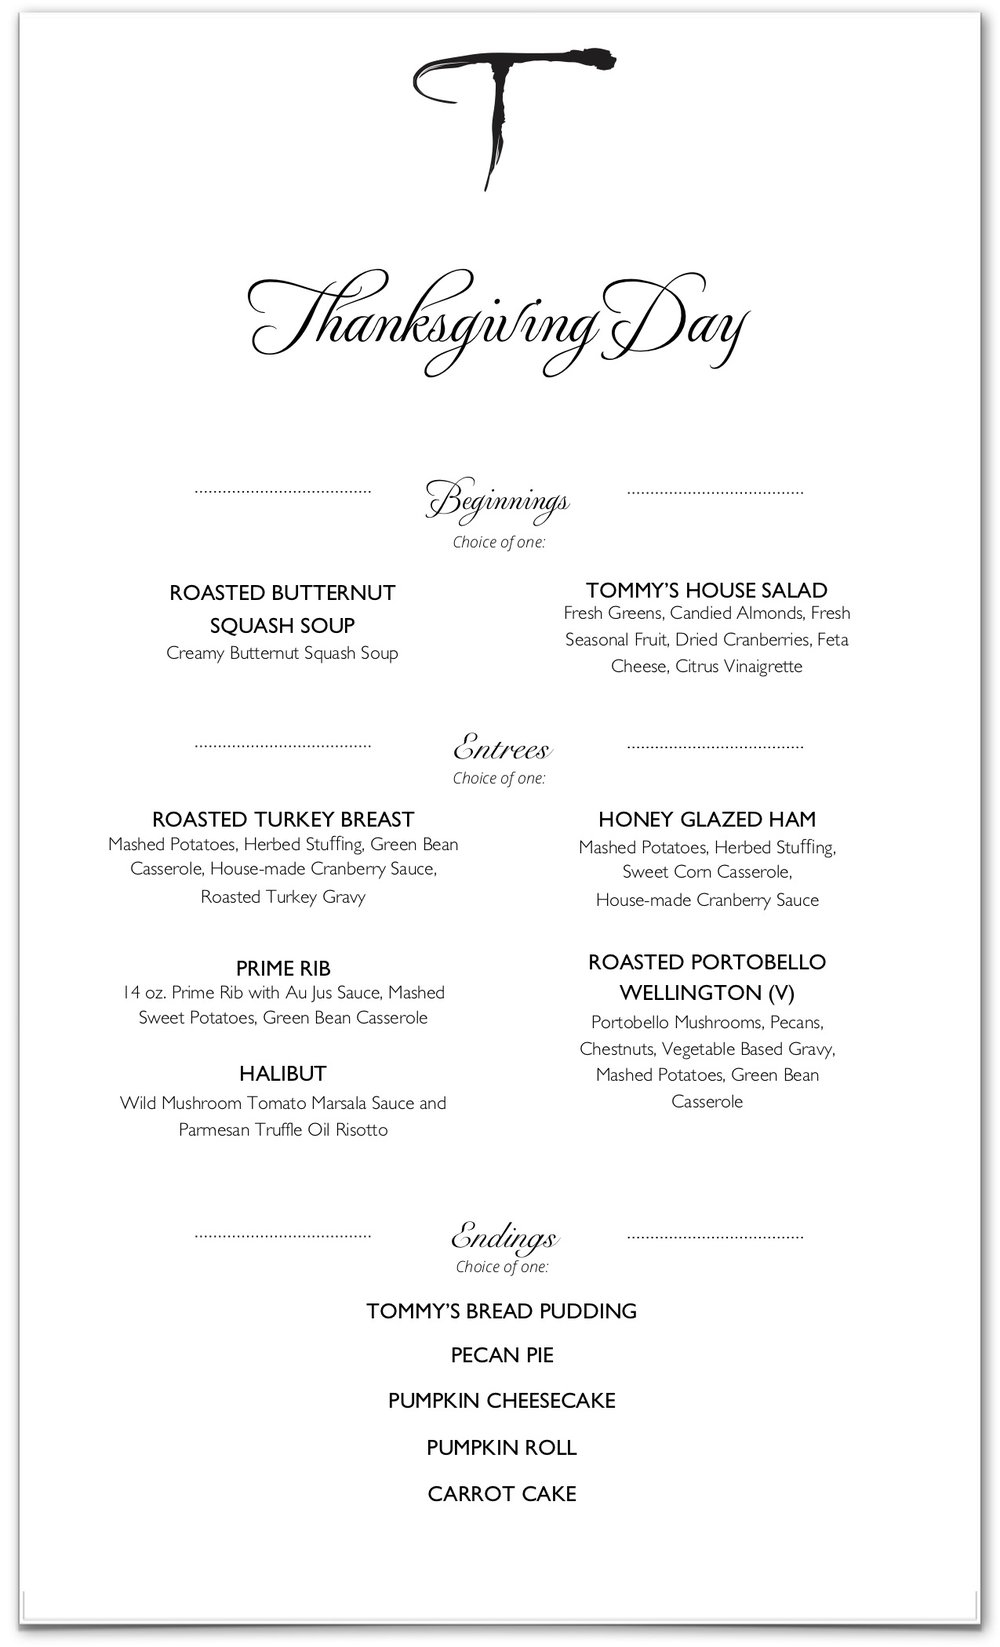 Tommys - Thanksgiving Day Menu 2018 - Website.jpg